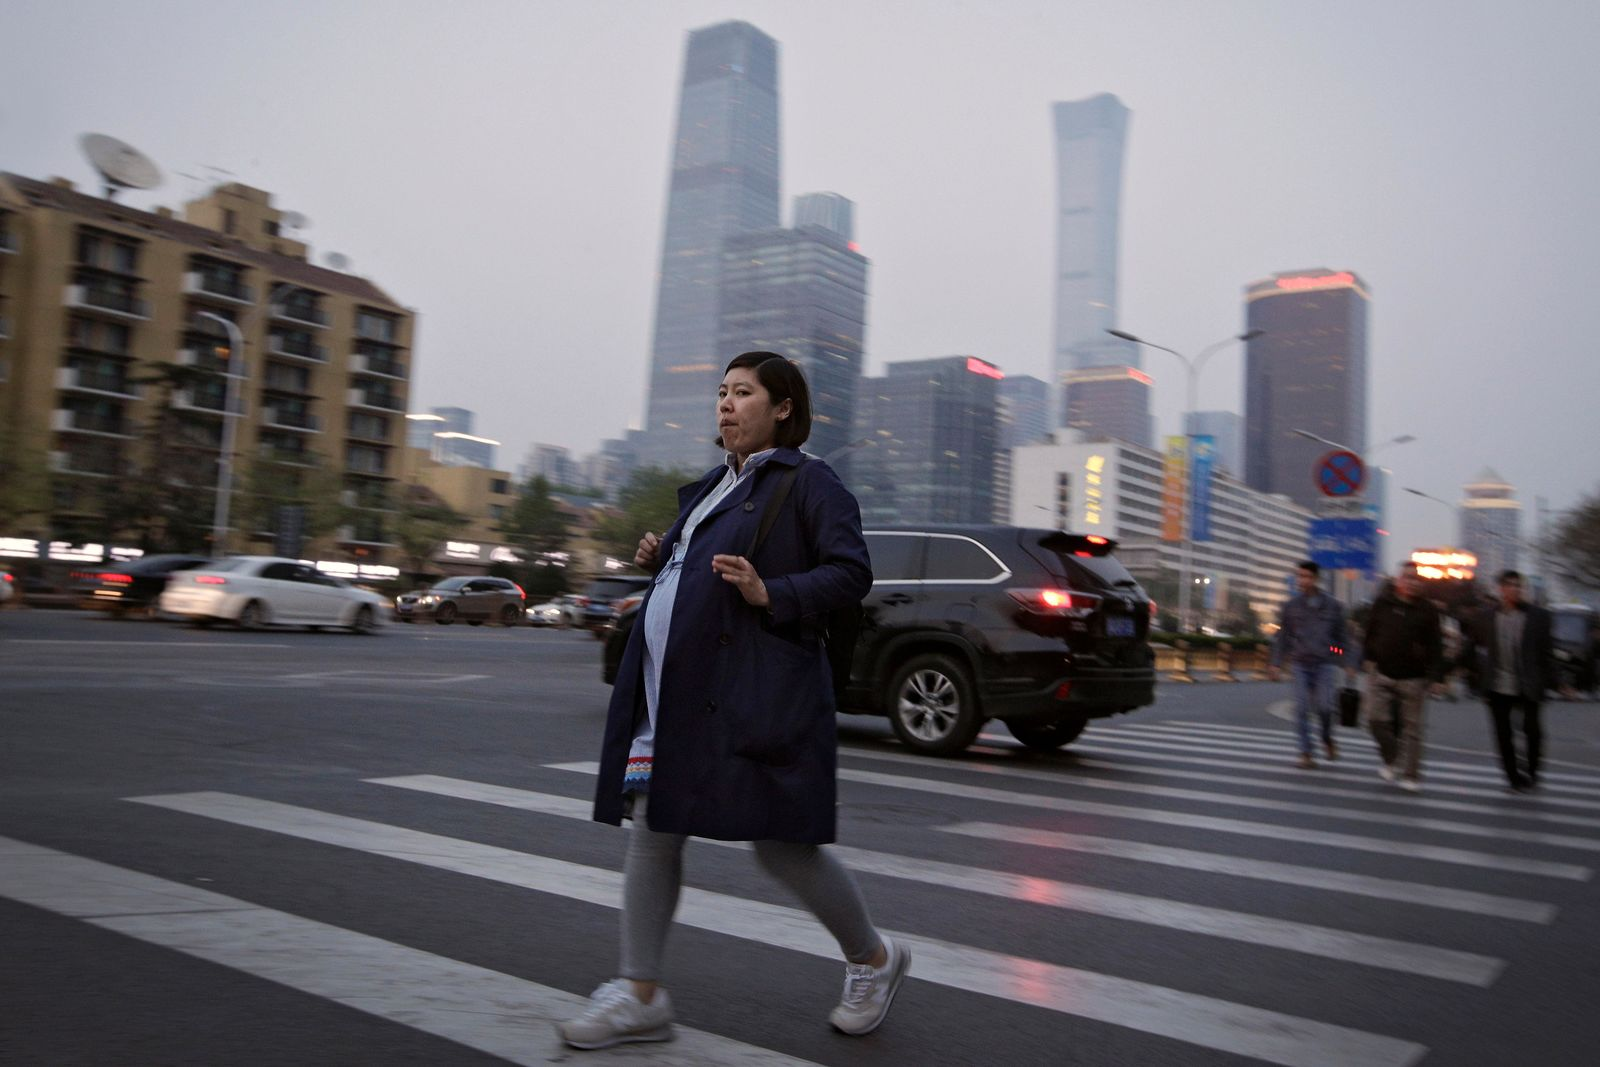 In this Wednesday, April 17, 2019, photo, a pregnant woman walks across a road near the Central Business District during the evening rush hour in Beijing. (AP Photo/Andy Wong)